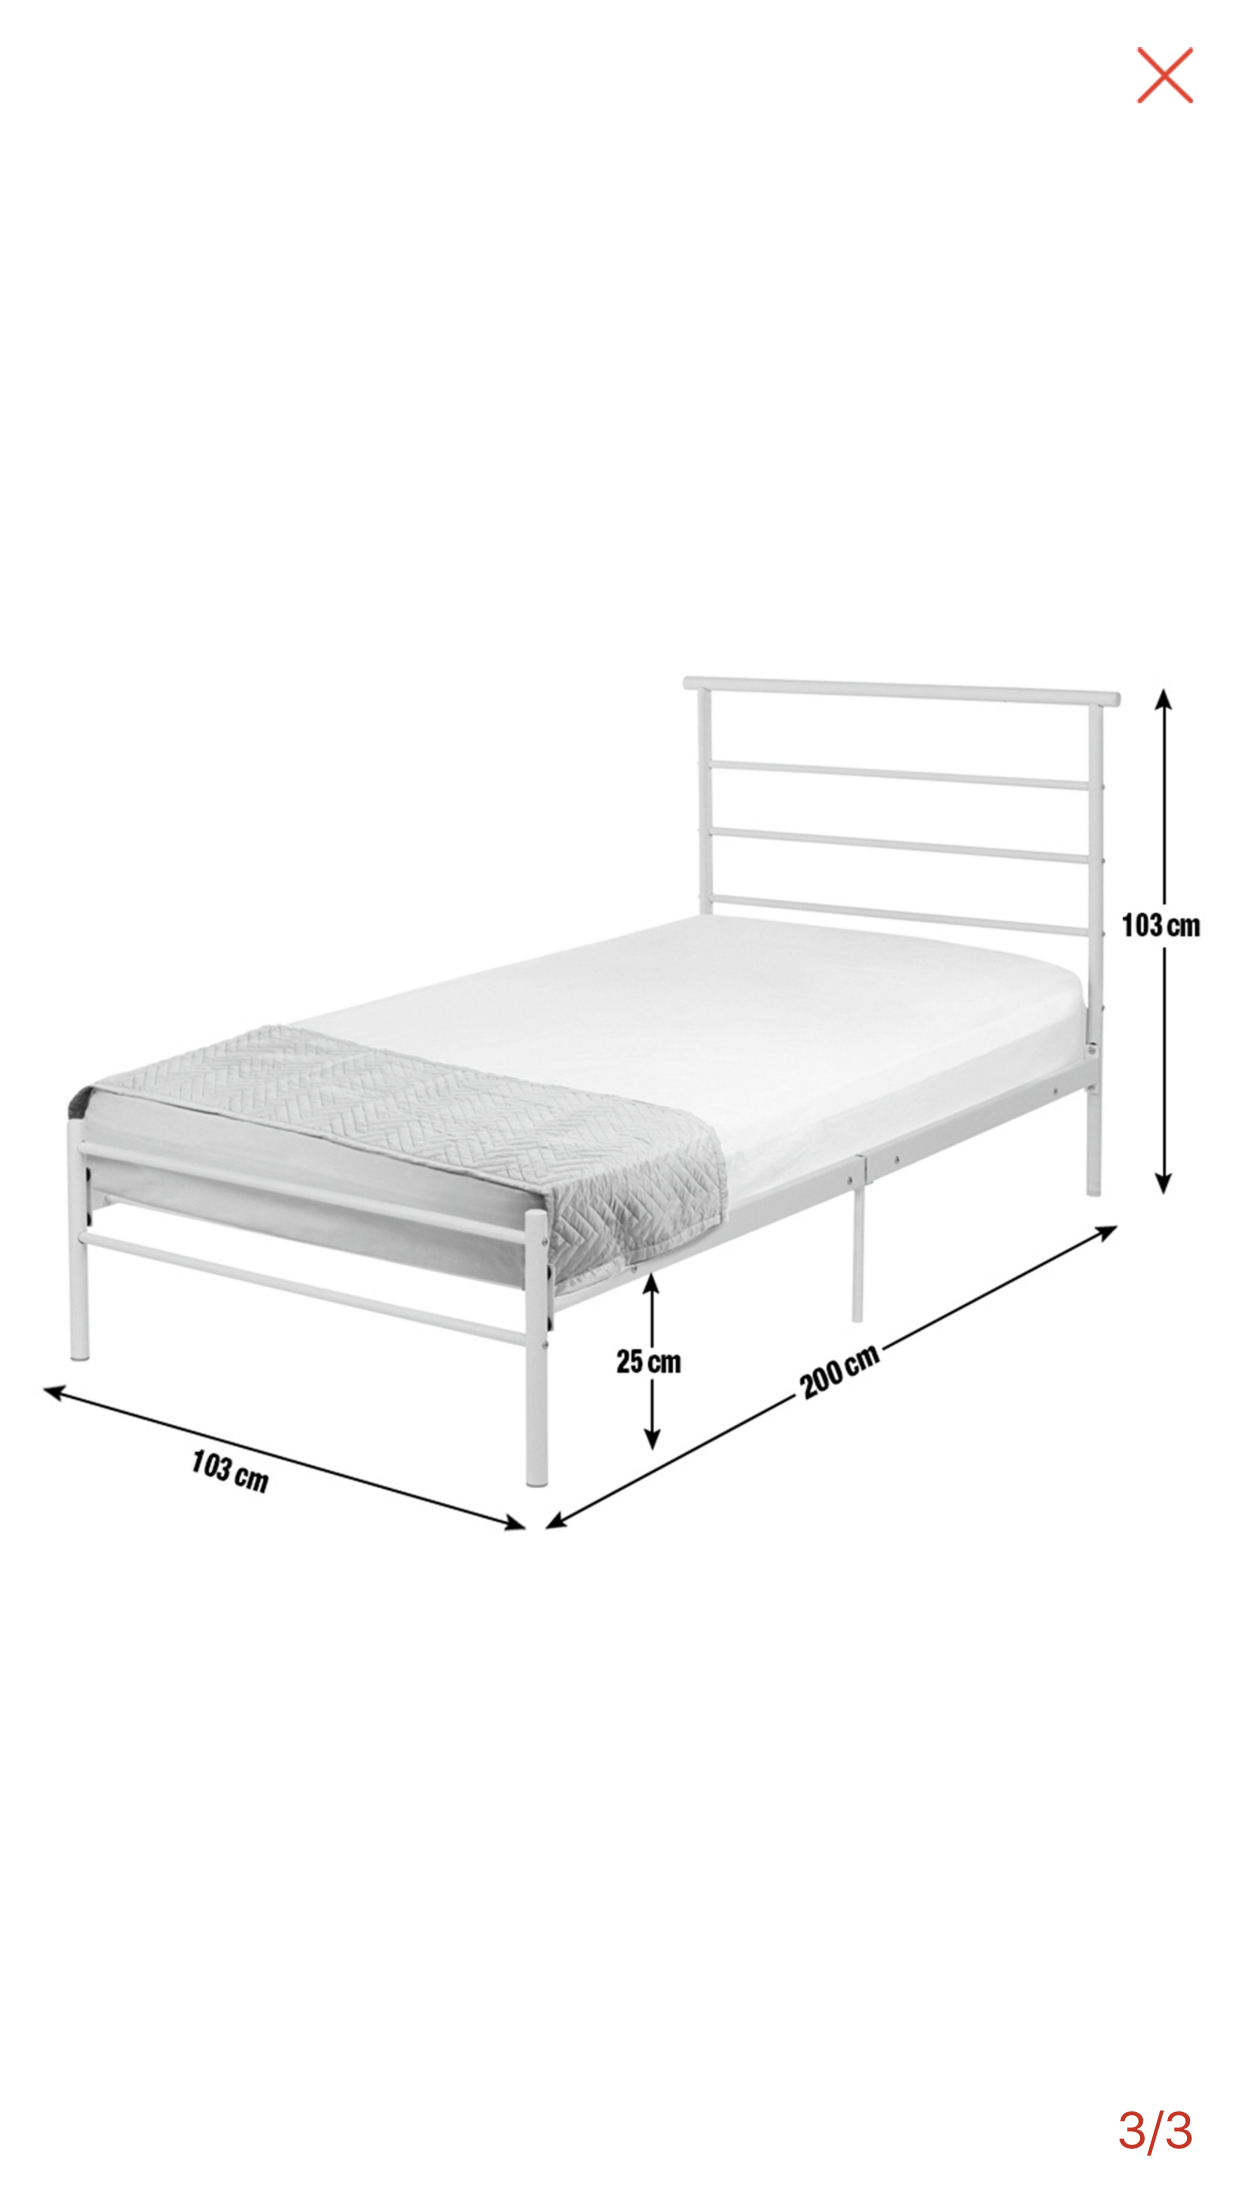 For Sale 2 Brand New Unused Matching Single Metal Bed Frames Memory Foam Mattress Buy And